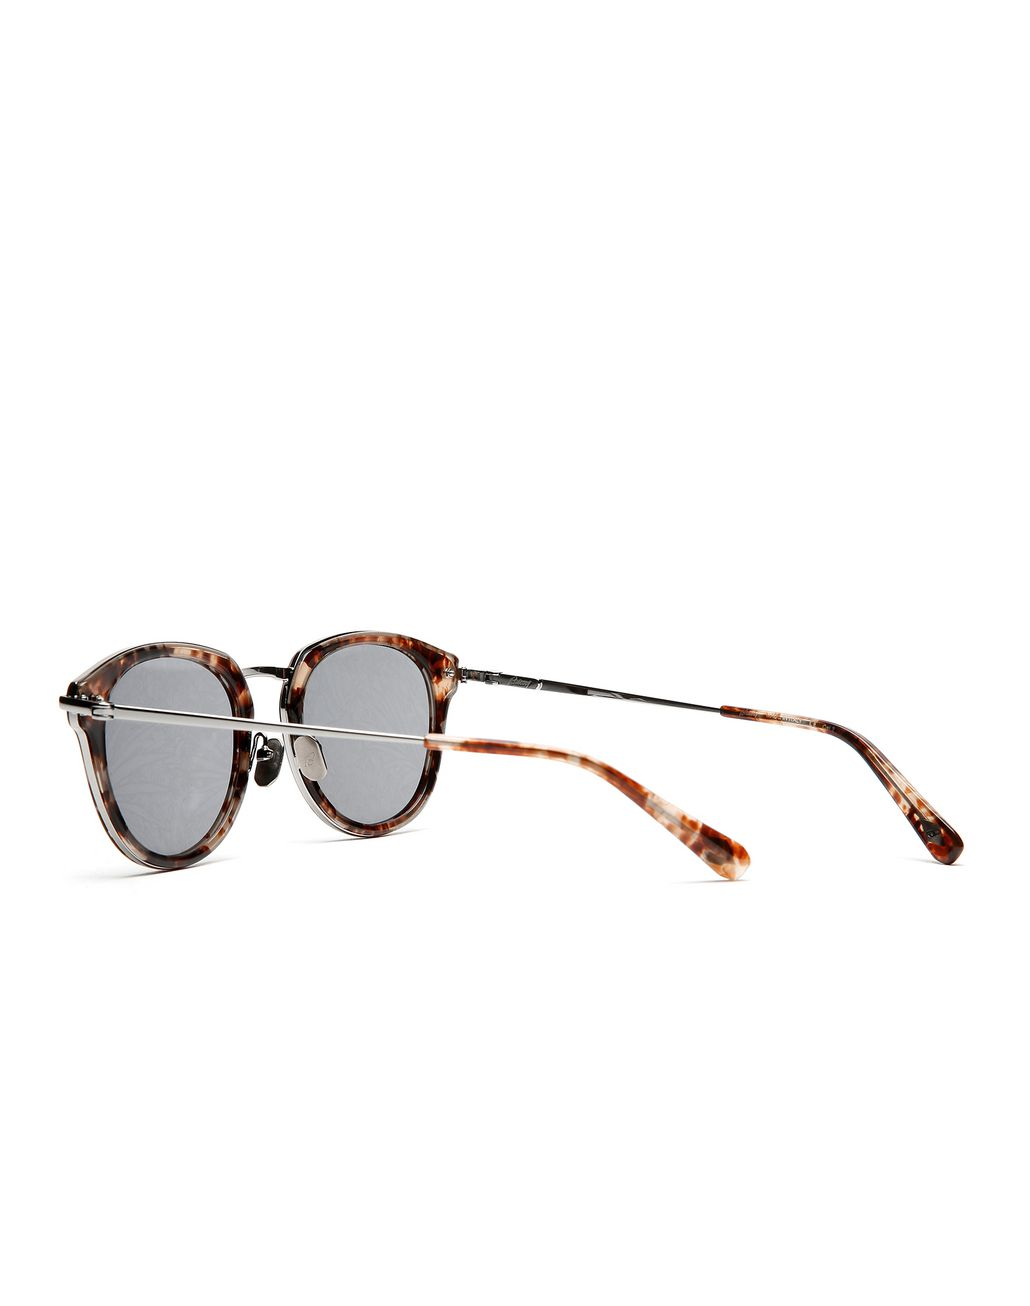 BRIONI Red Havana Sunglasses with Jungle Concept Grey Lenses Sunglasses Man d